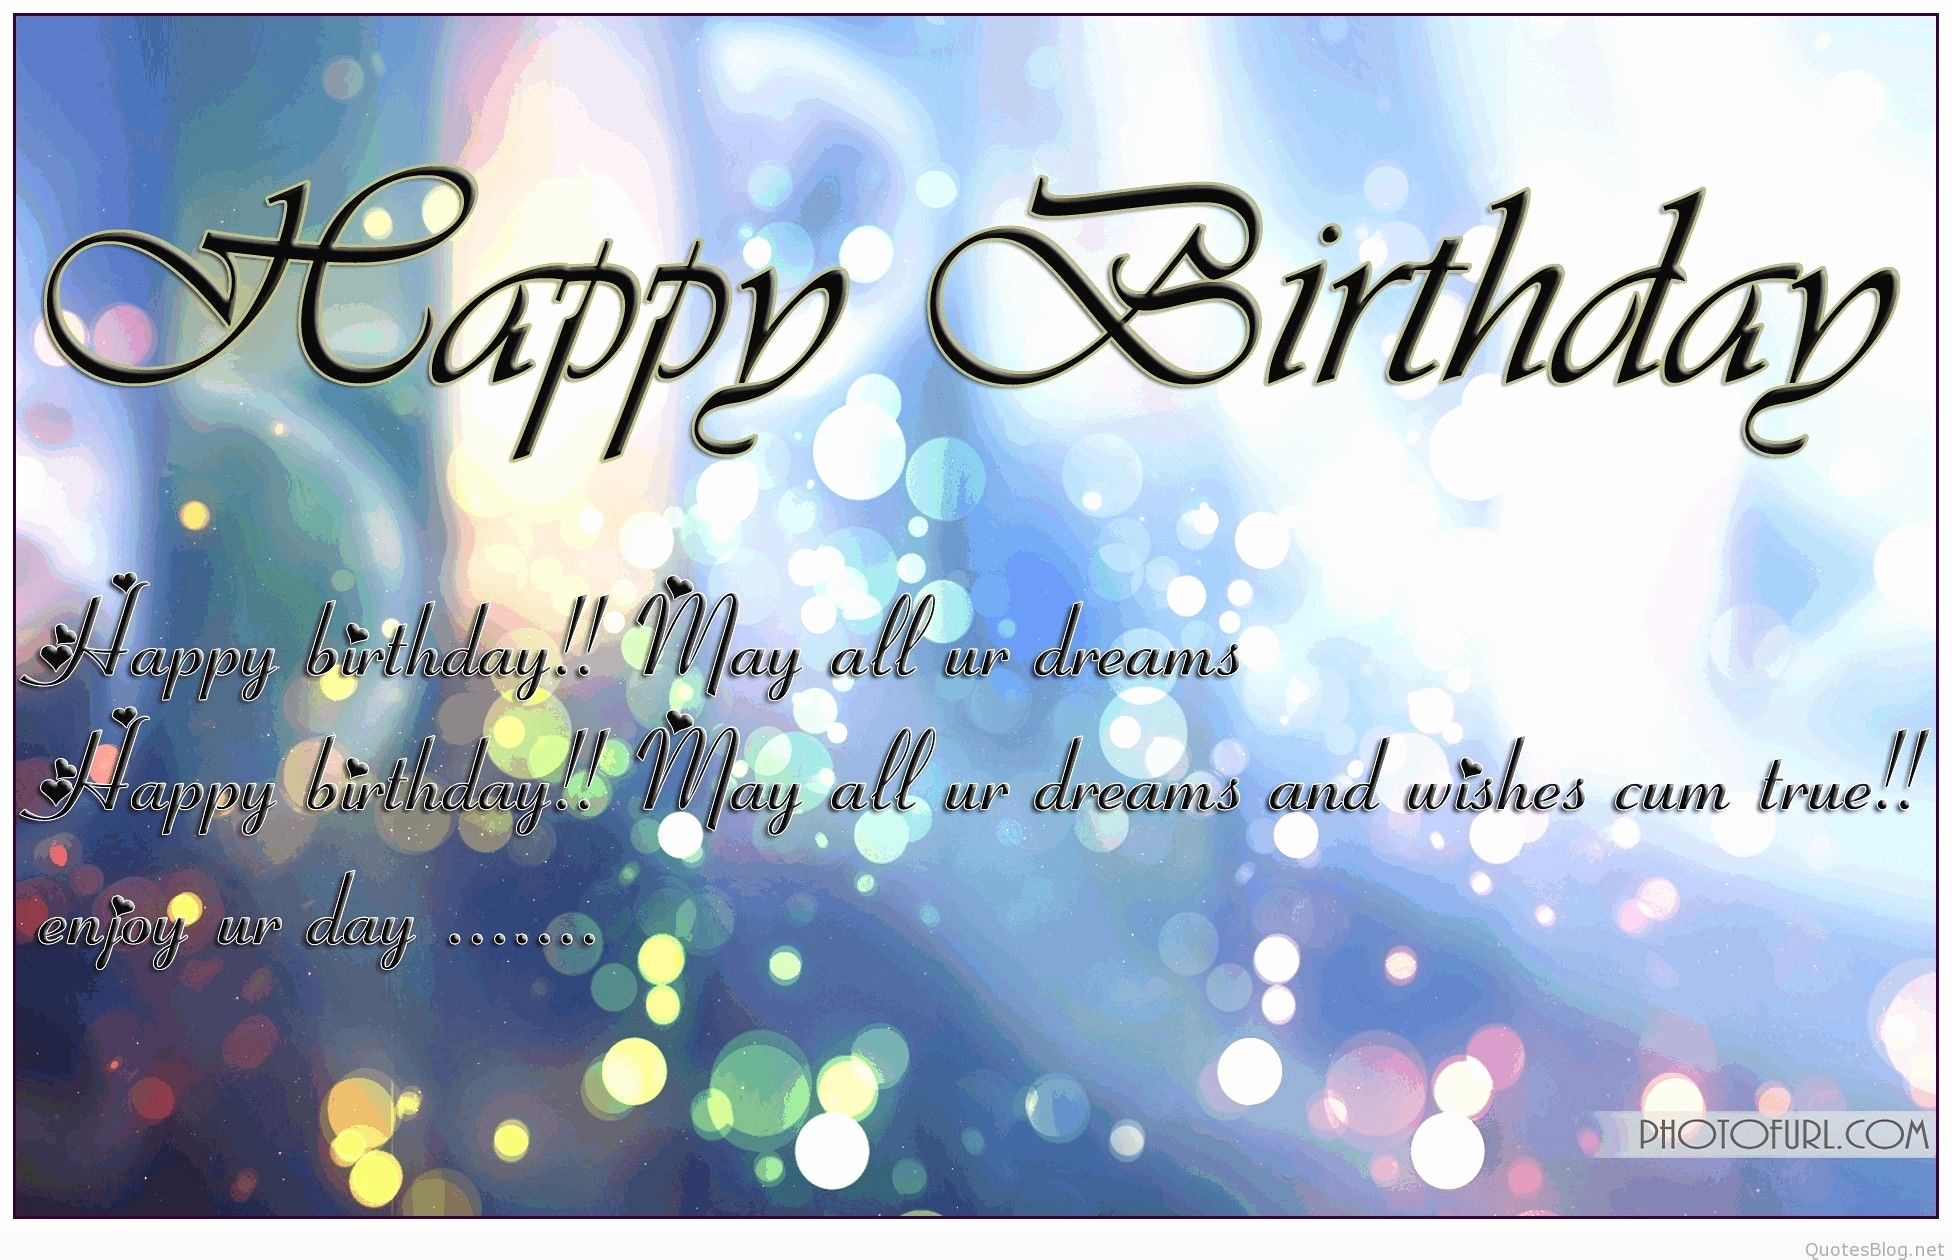 birthday sayings for friends birthday card ; good-friend-birthday-card-fresh-friend-birthday-quotes-for-a-card-happy-birthday-friends-wishes-of-good-friend-birthday-card